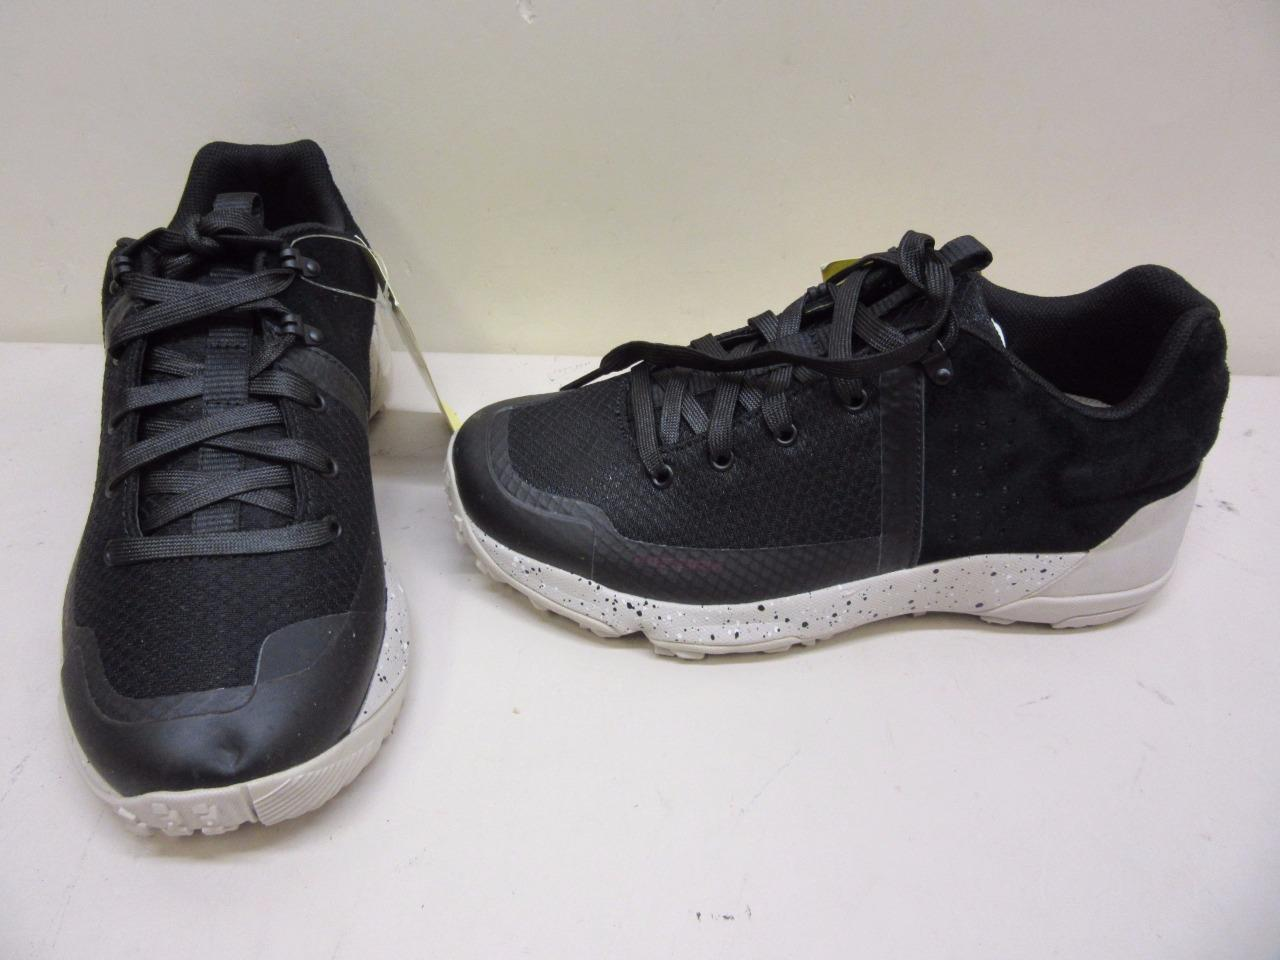 Under Armour Burnt River Low 2.0 Women's Size 7 SMS Sample Shoes Running Hiking